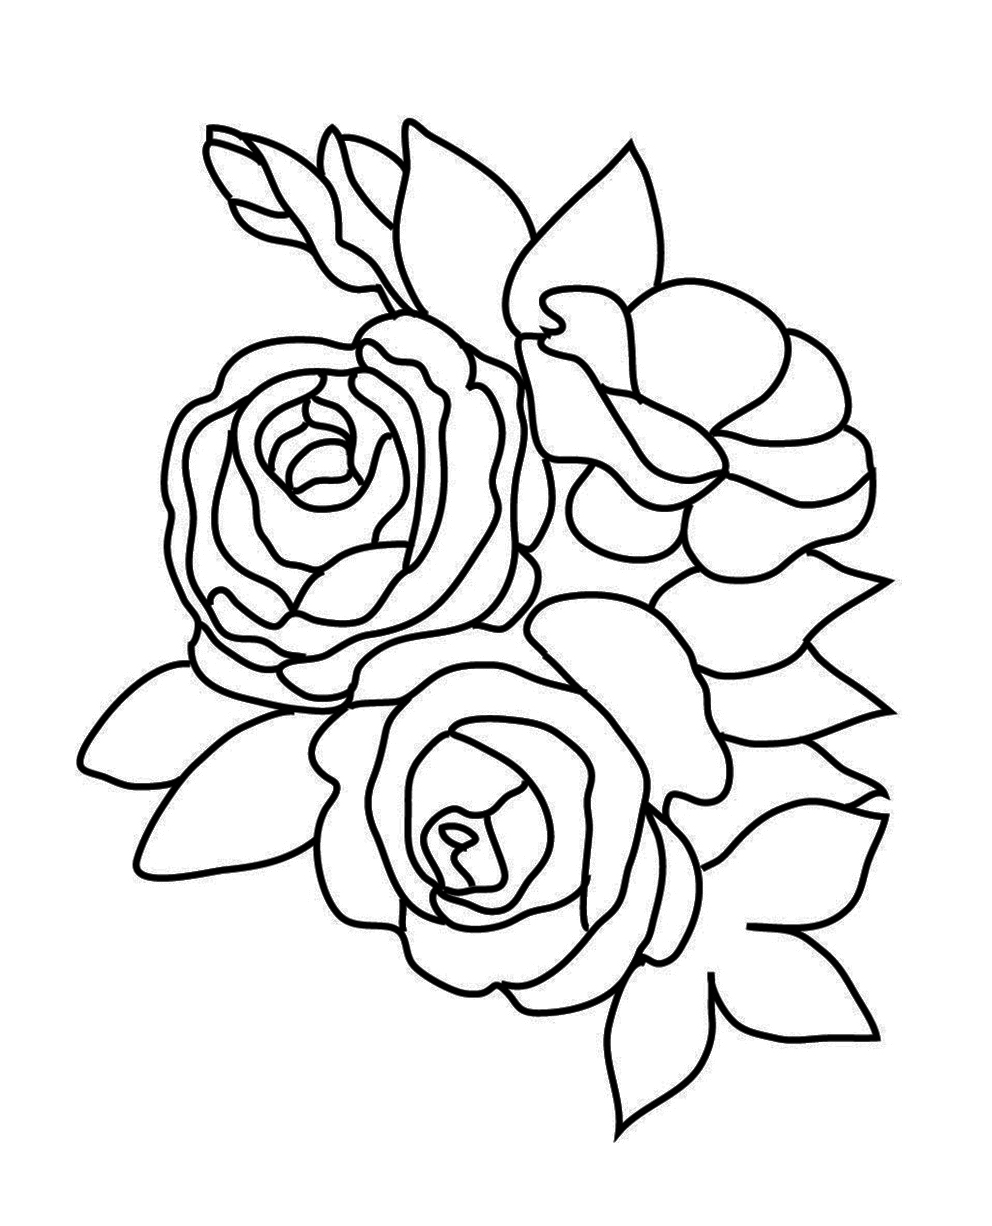 coloring pages rose roses coloring pages getcoloringpagescom rose pages coloring